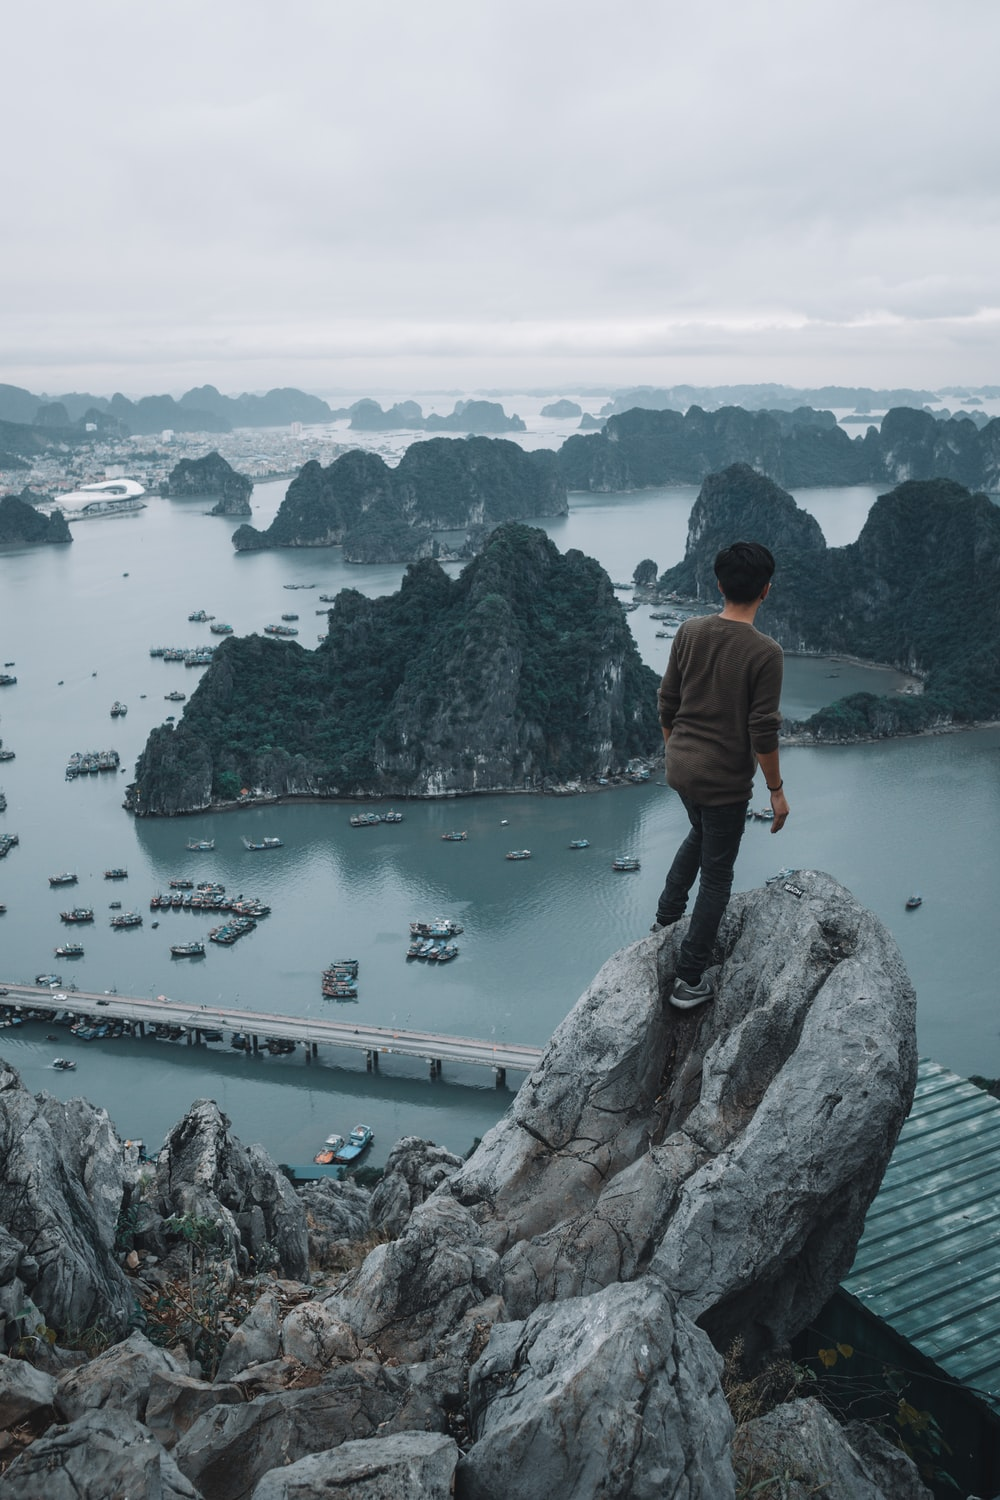 man standing on top of a rocky mountain overlooking other islets